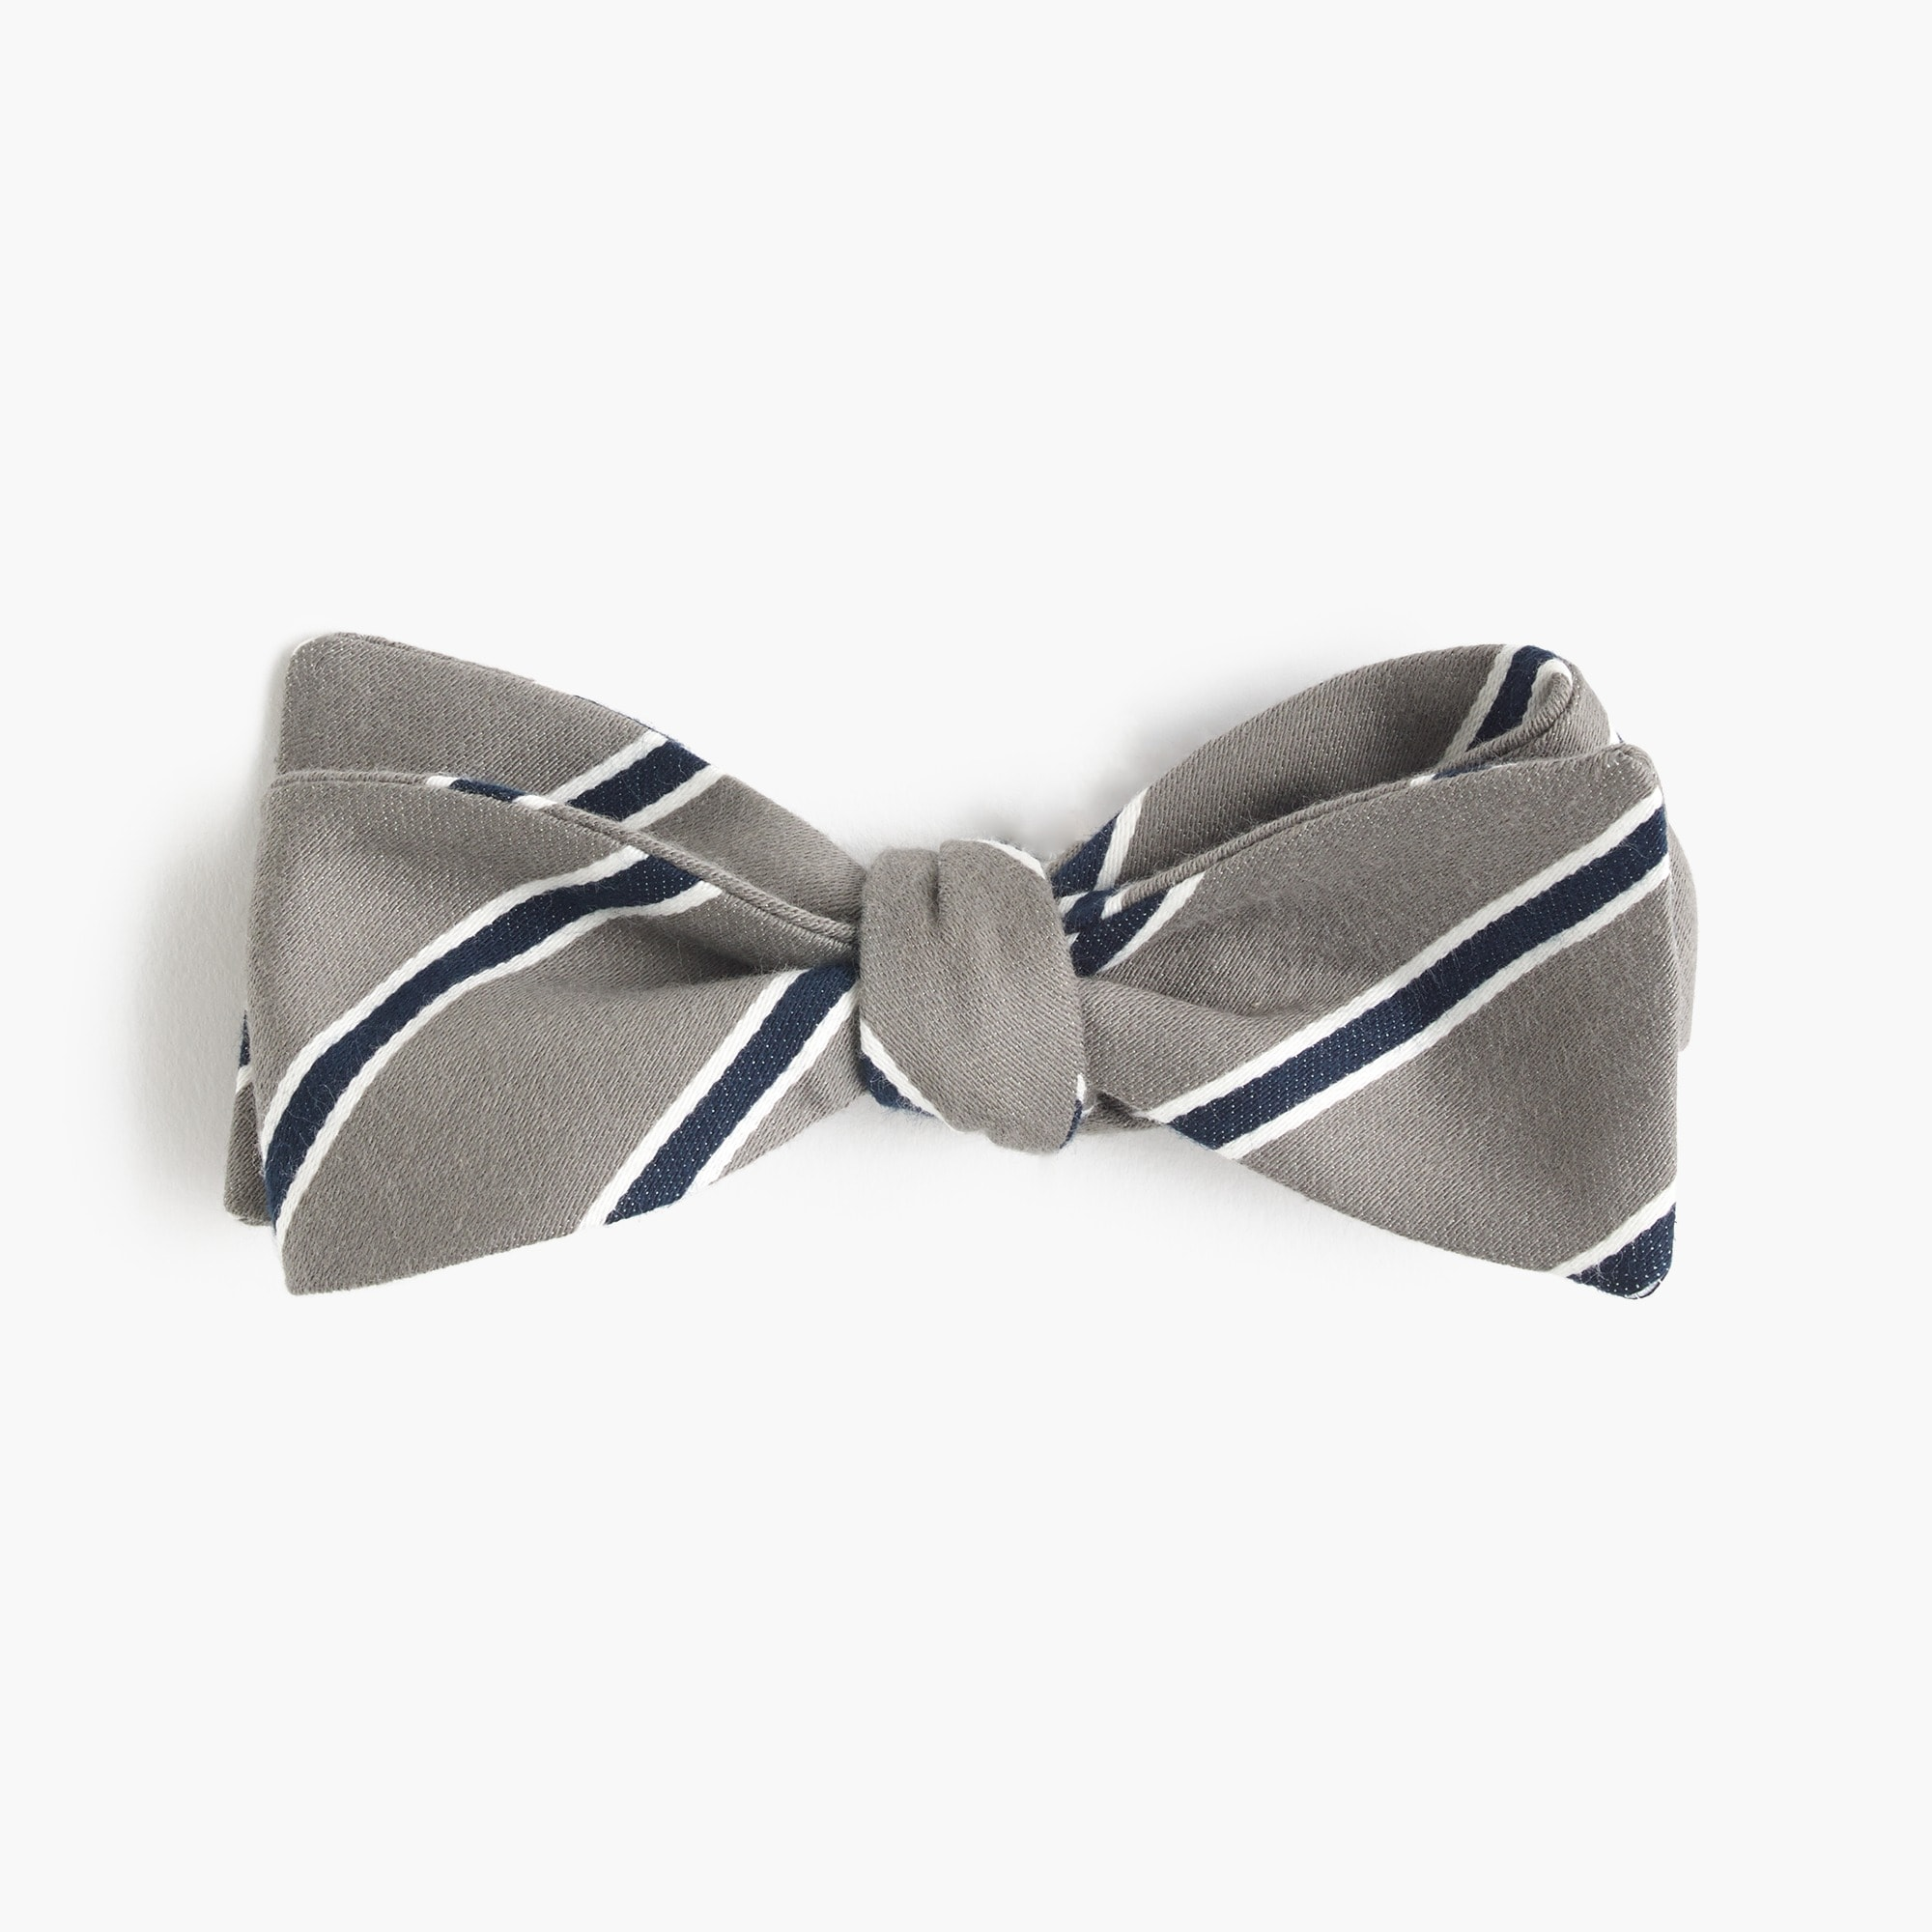 cotton-silk bow tie in grey stripe : men bow ties